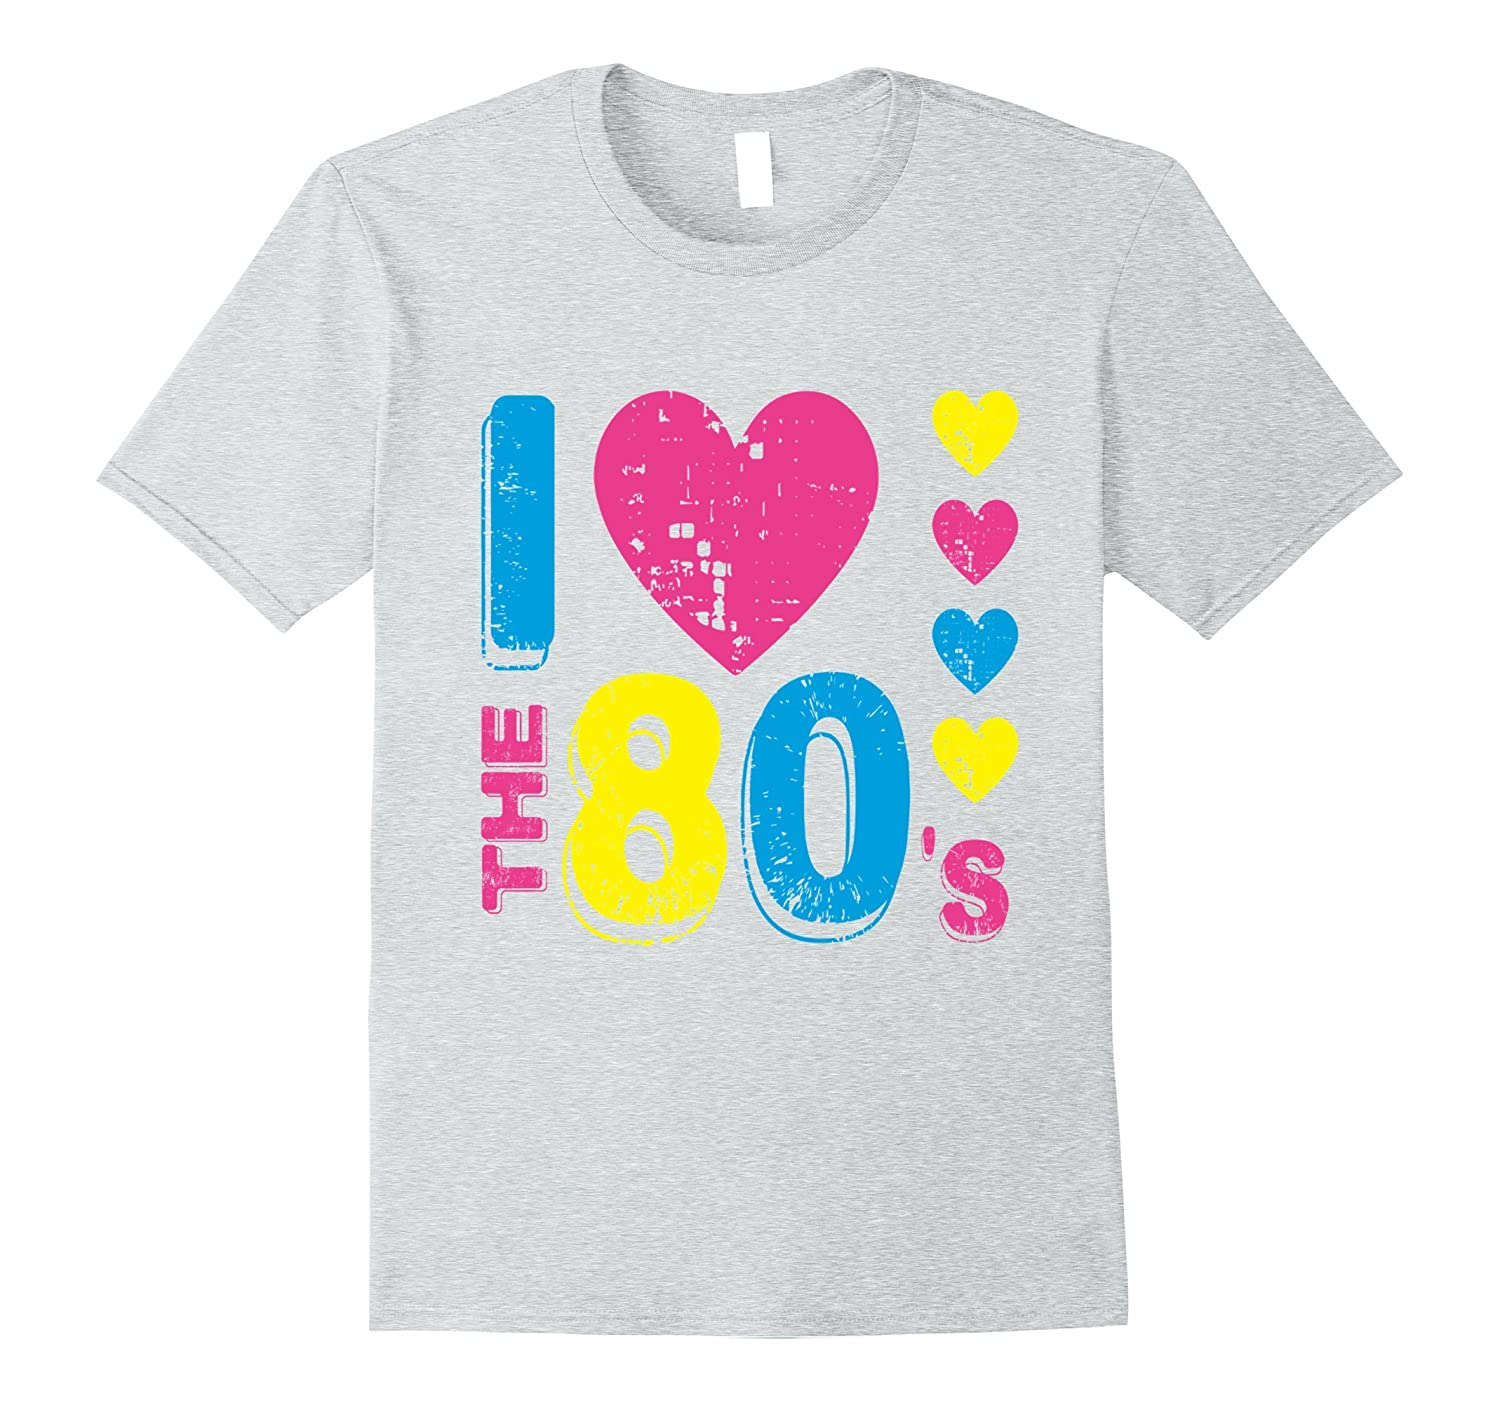 Womens I Love The 80's T shirt 80s clothes for women costume-ah my shirt one gift